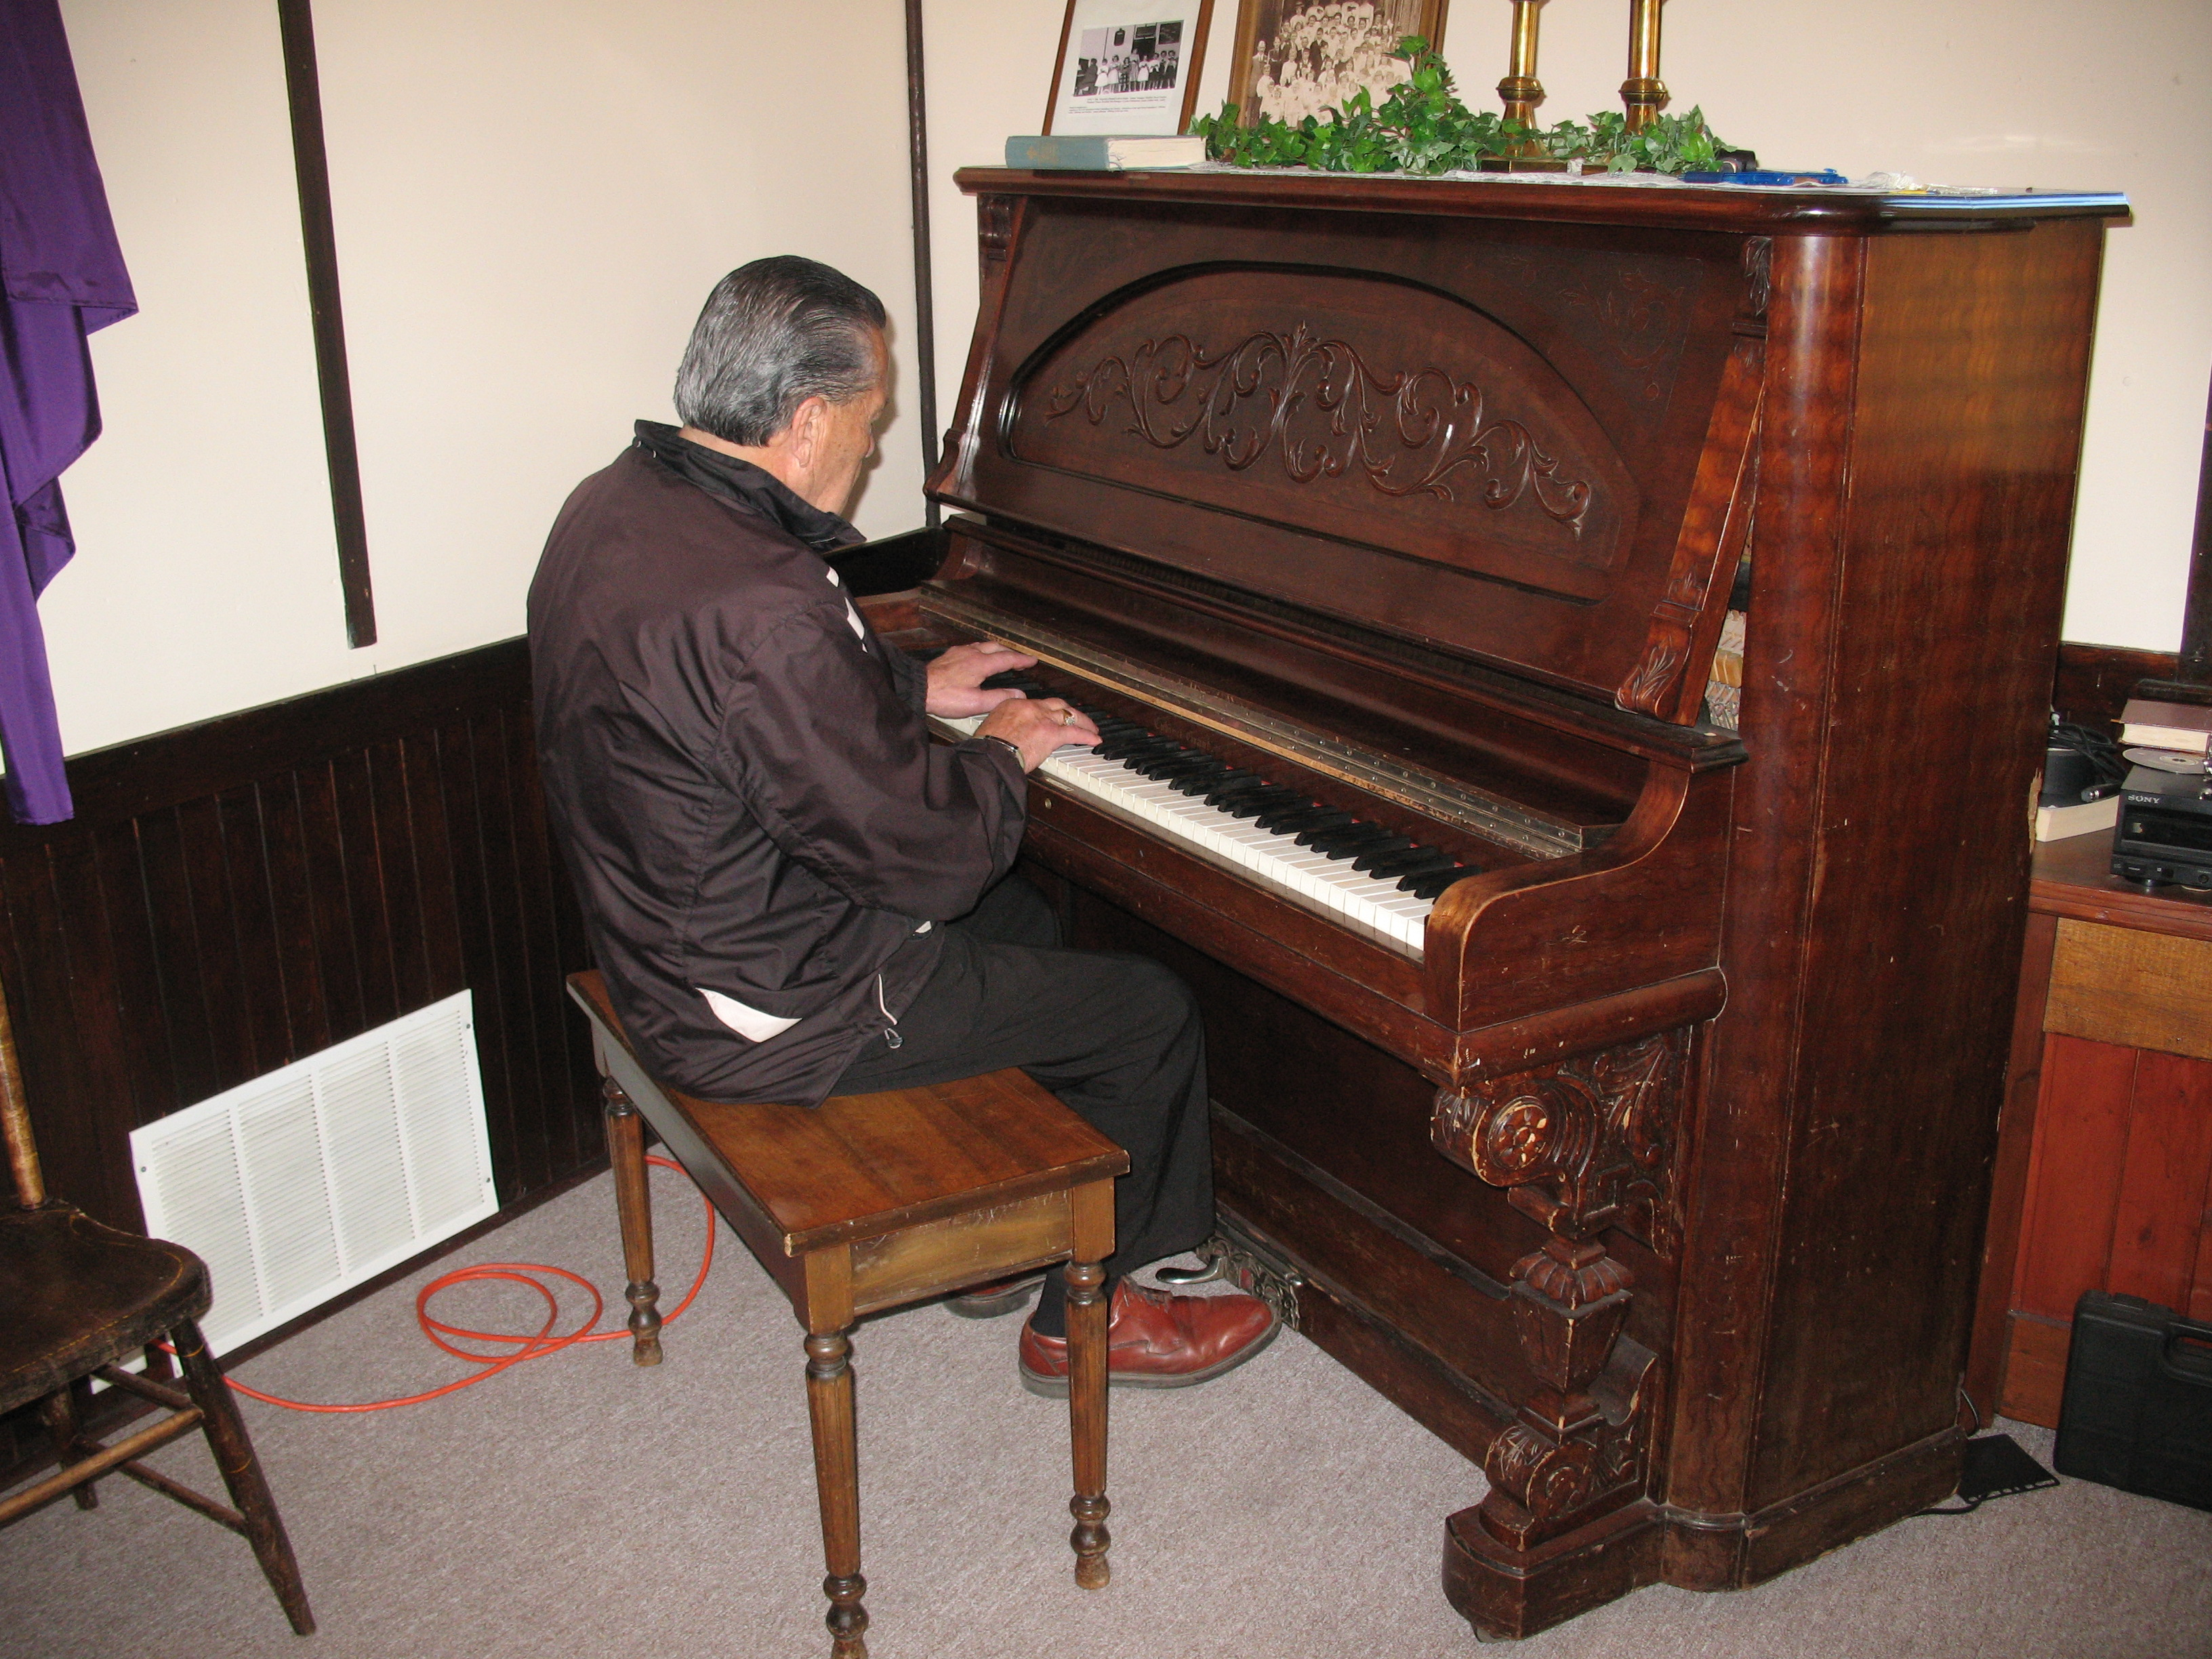 When Garry Jespersen plays the piano, he uses the entire keyboard.